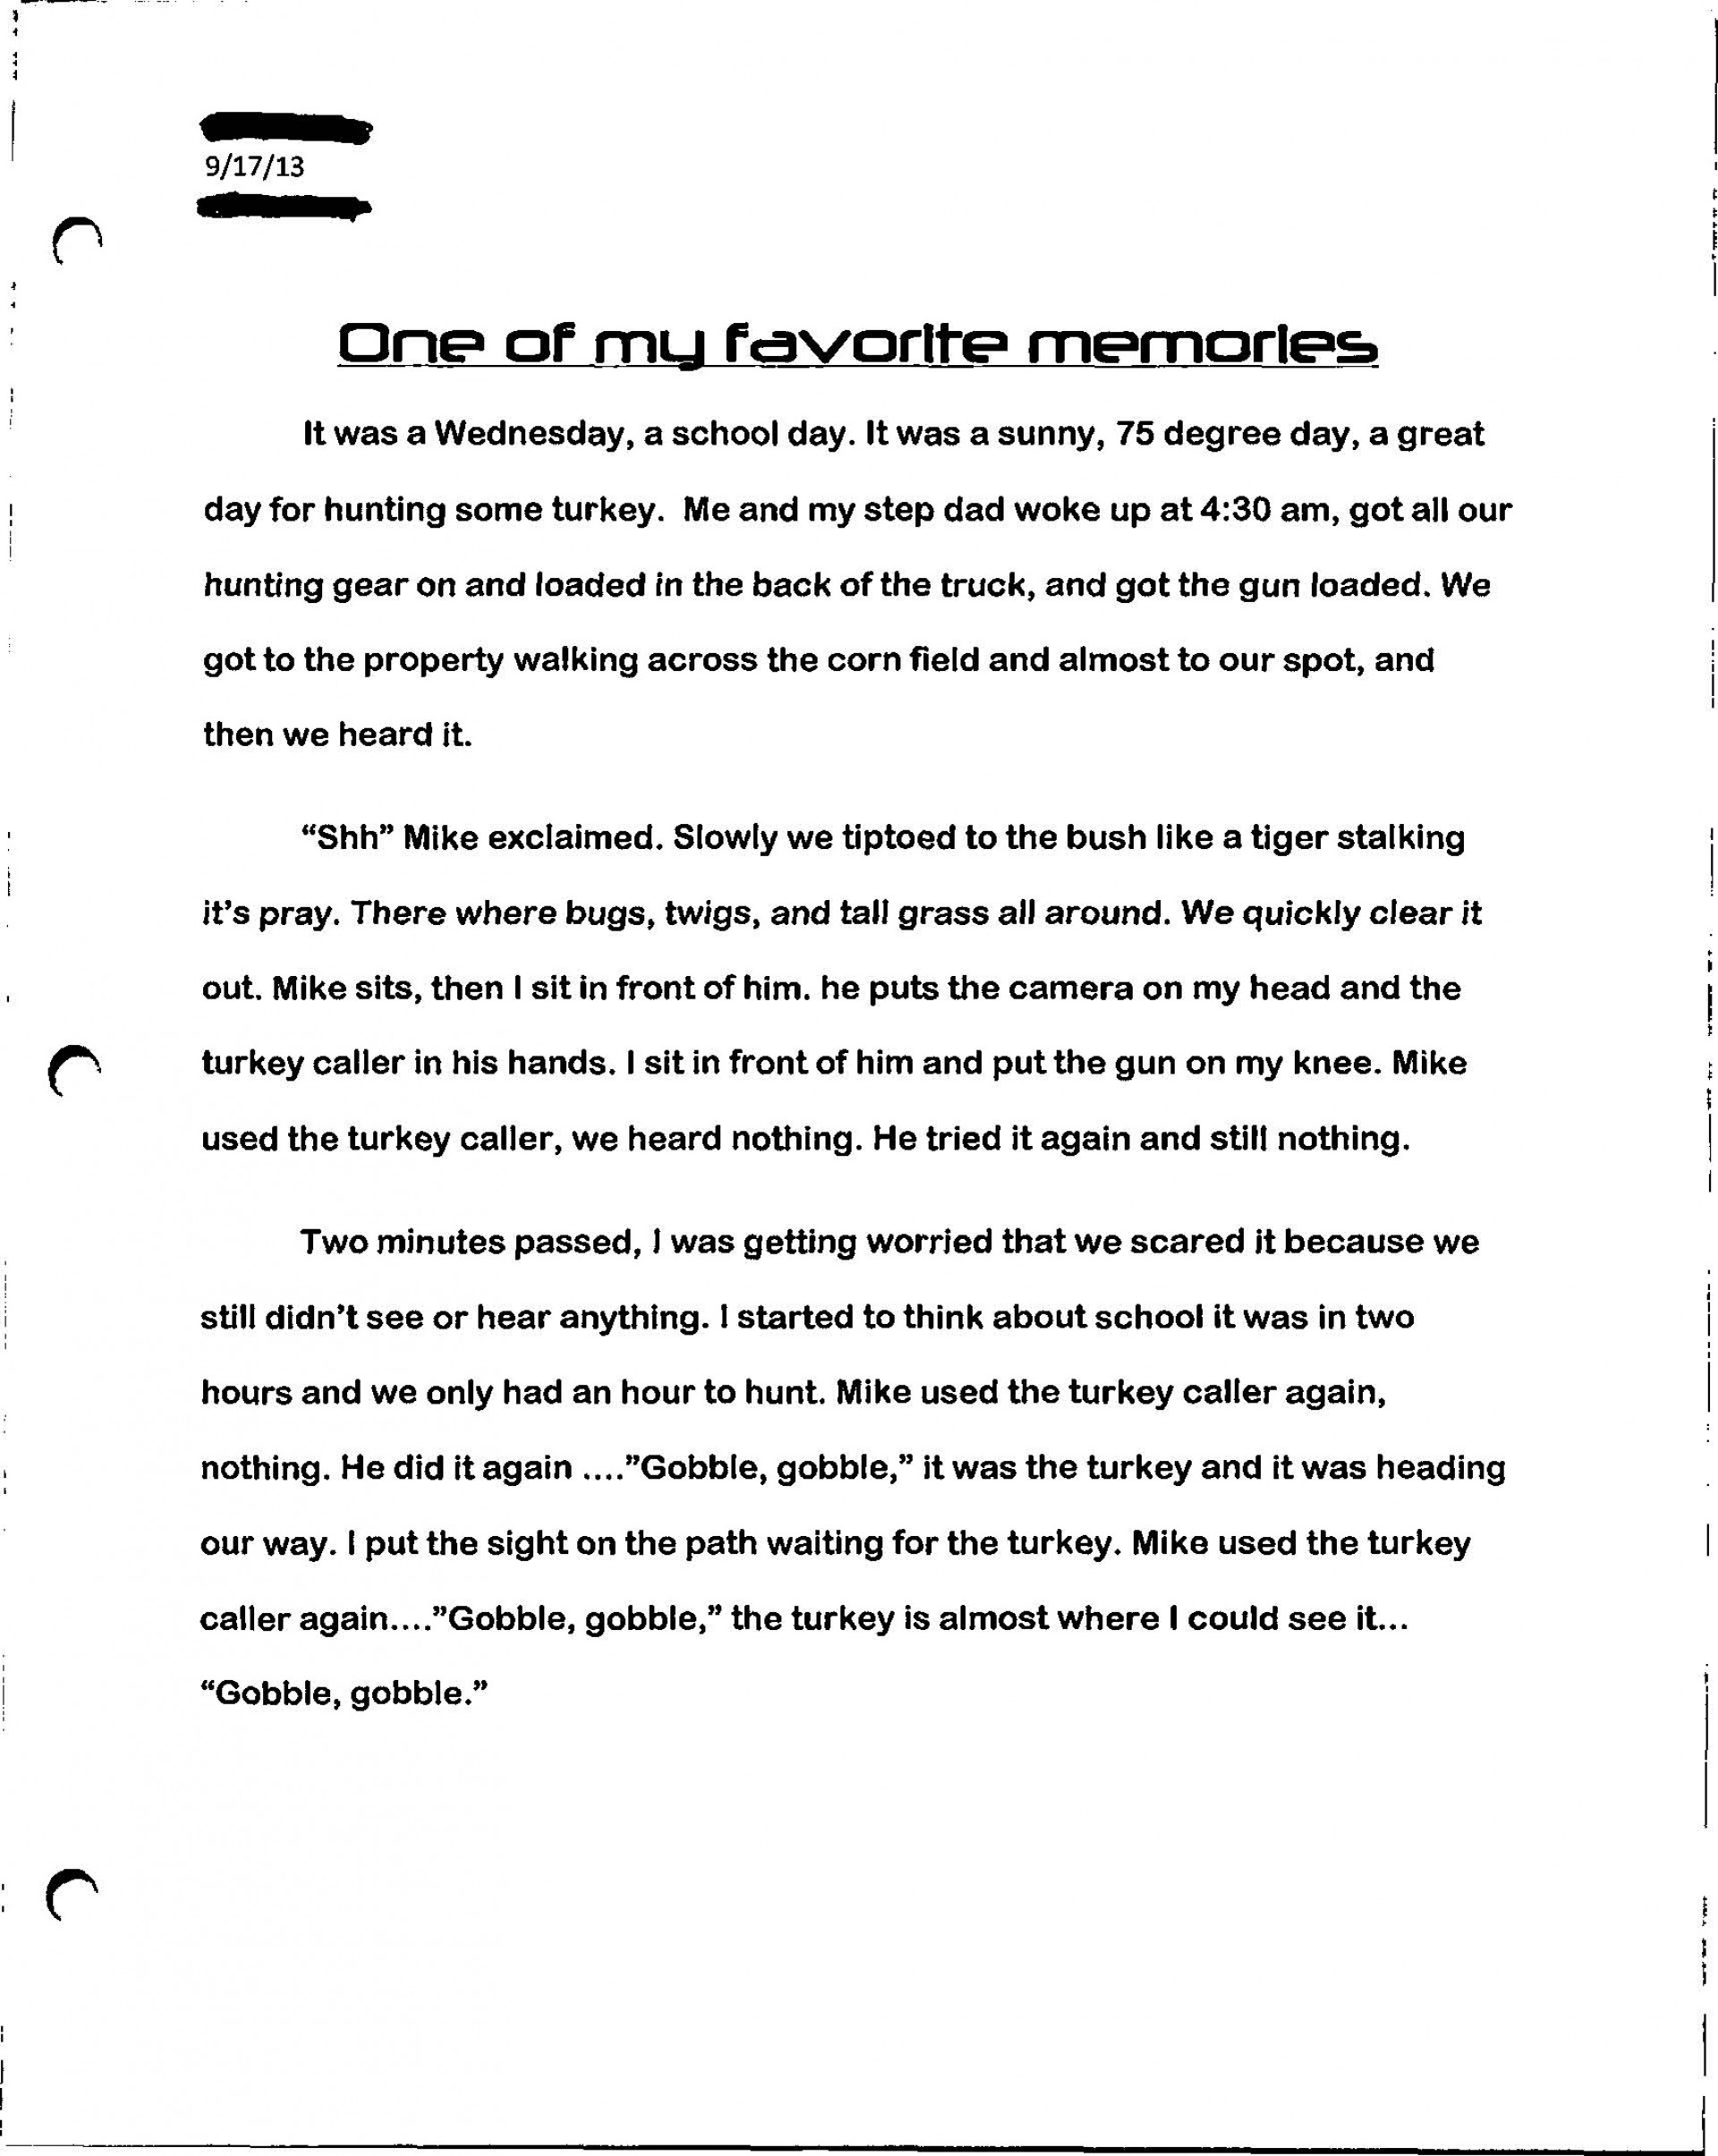 002 Paperexample2 Page 1 Essay Example Who Am I Amazing Examples For Students College How To Write A Good 'who I' 1920